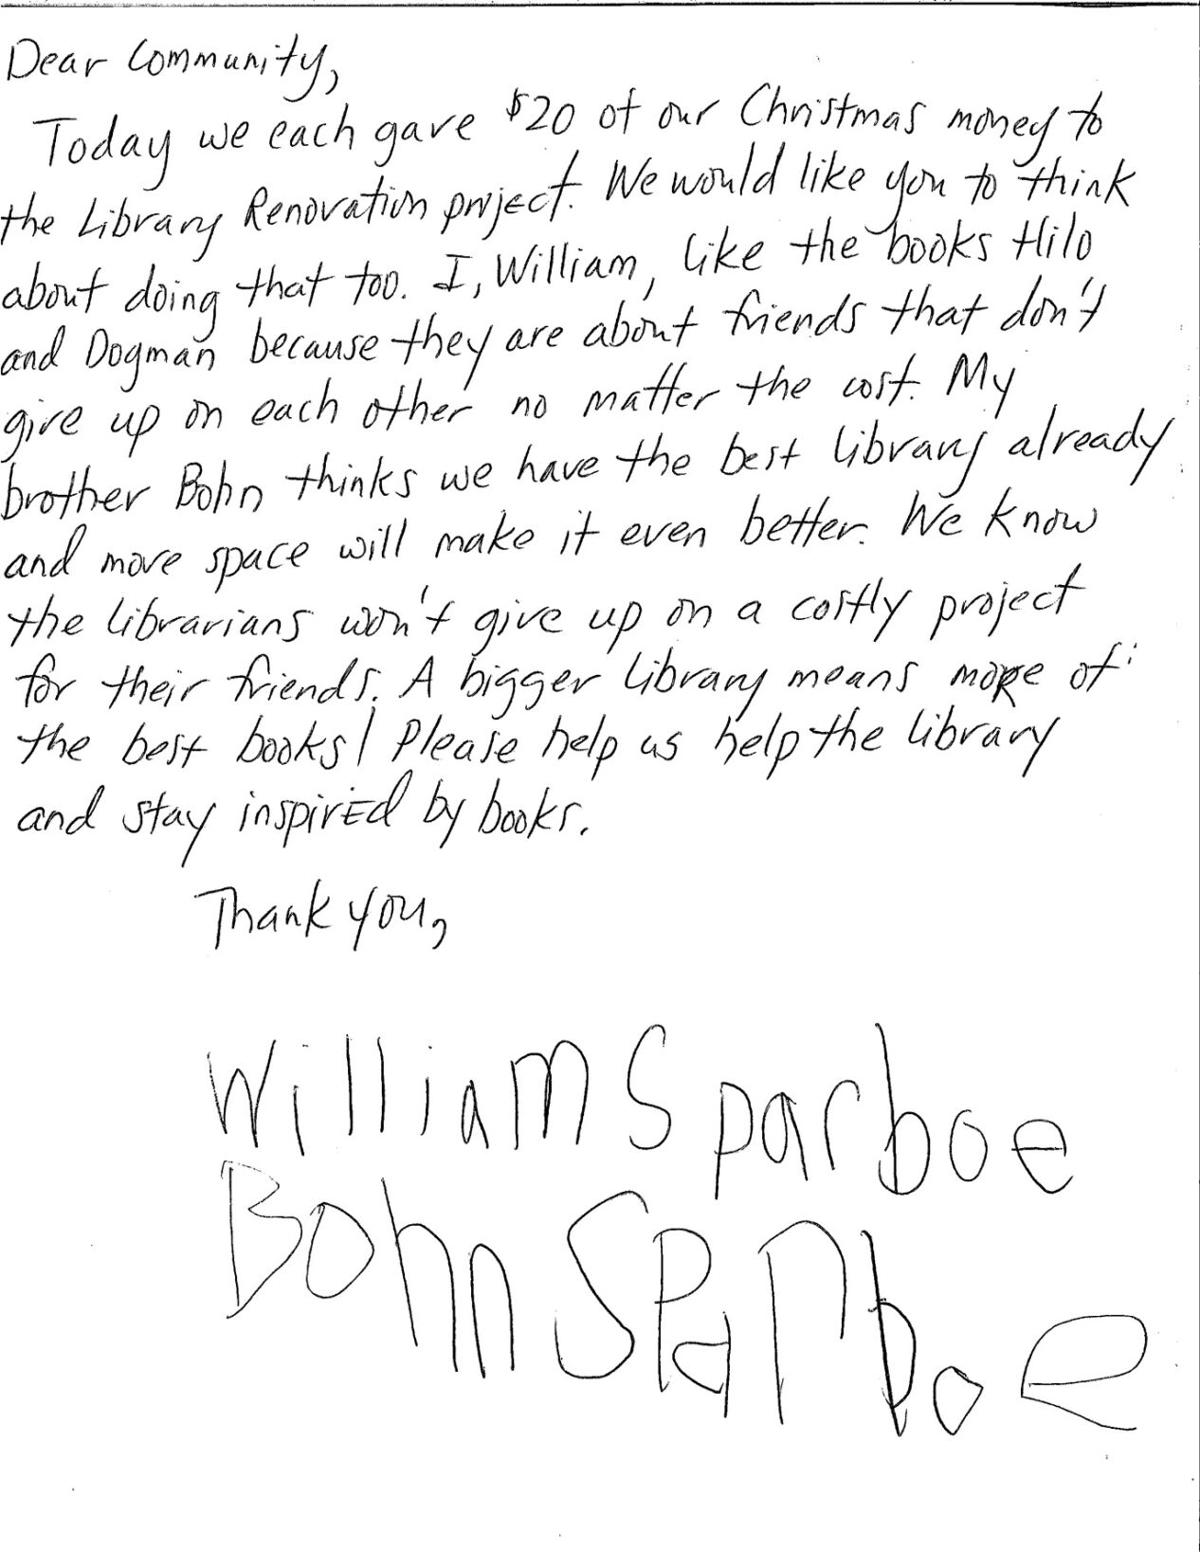 Brothers donate Christmas to library project- letter